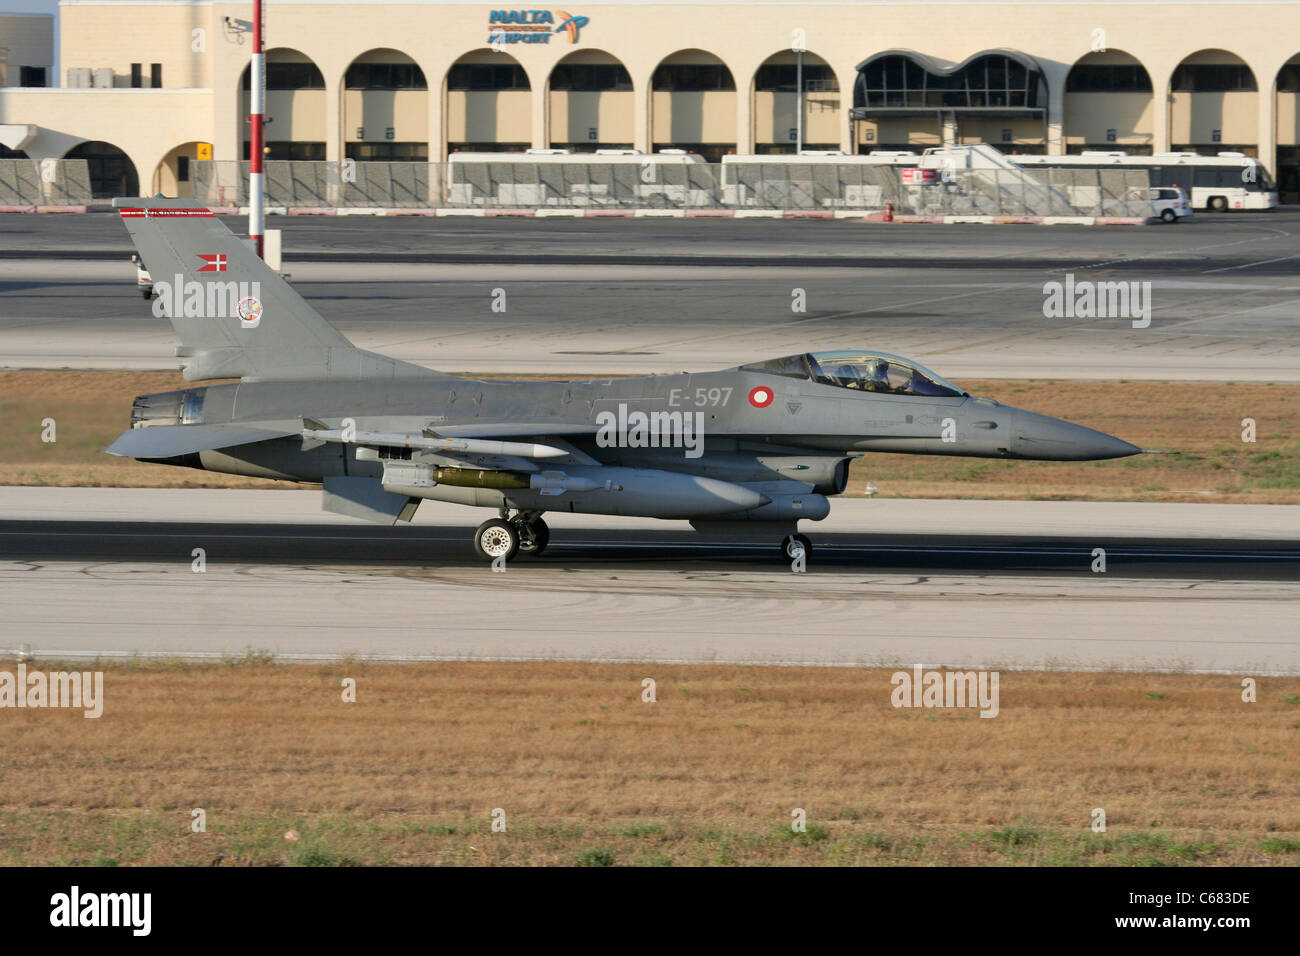 Danish Air Force F-16AM jet fighter taxiing for departure from Malta during the Libyan conflict, 31 July 2011 - Stock Image